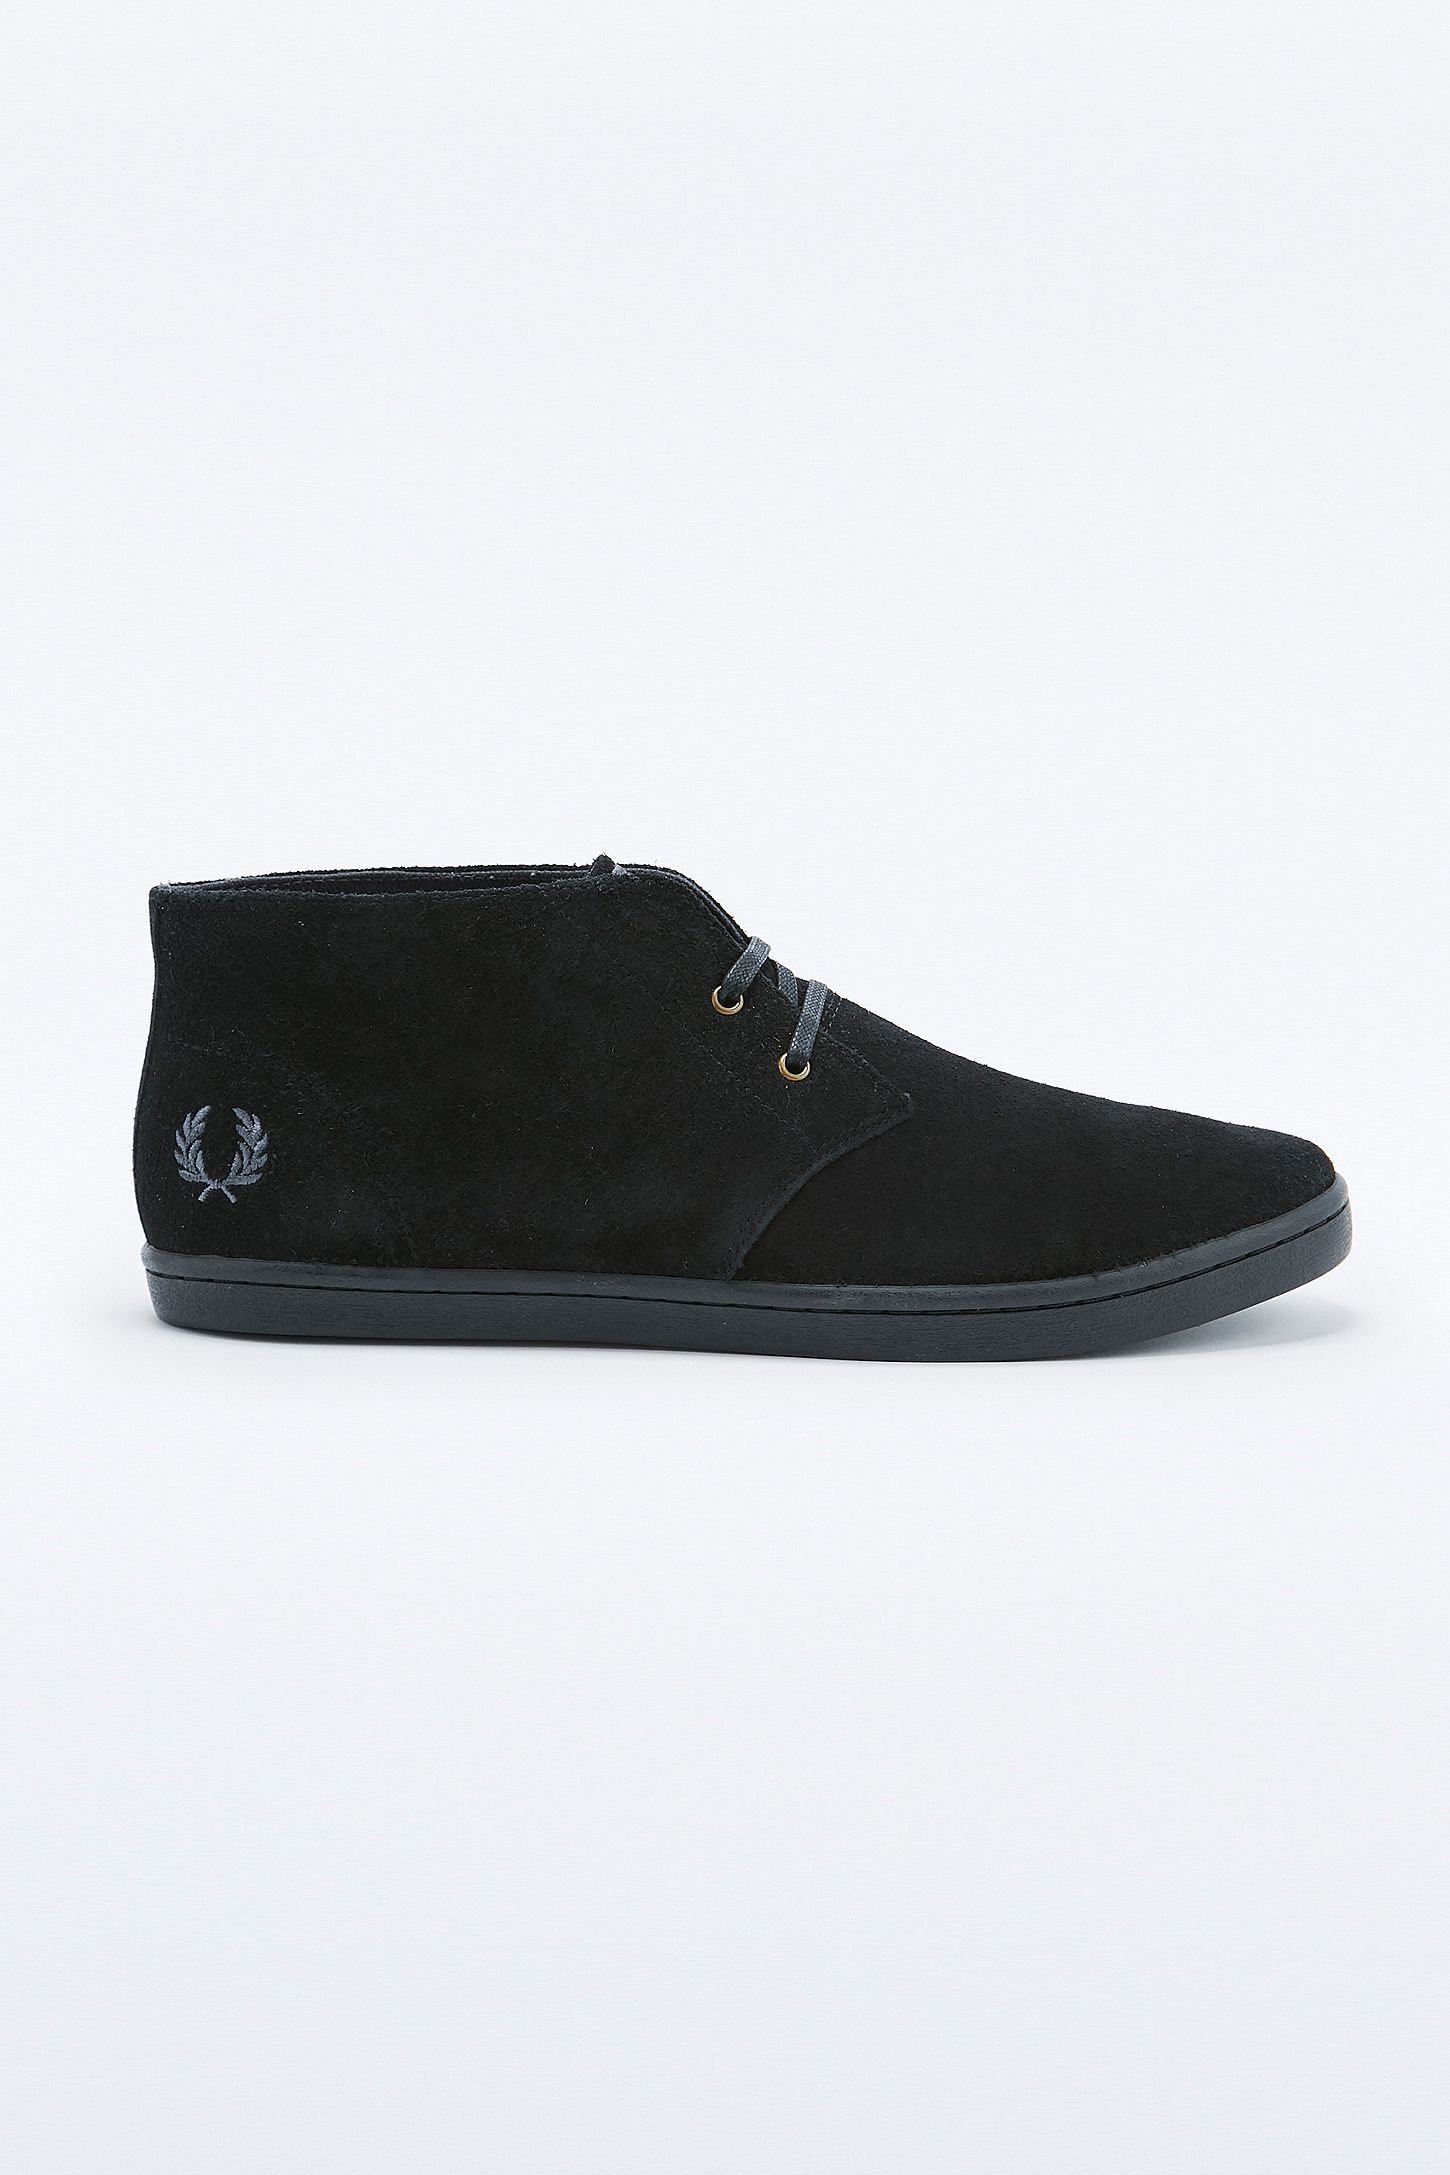 cfe0ca8e1db Fred Perry Byron Black Desert Boot. Click on image to zoom. Hover to zoom.  Double Tap to Zoom